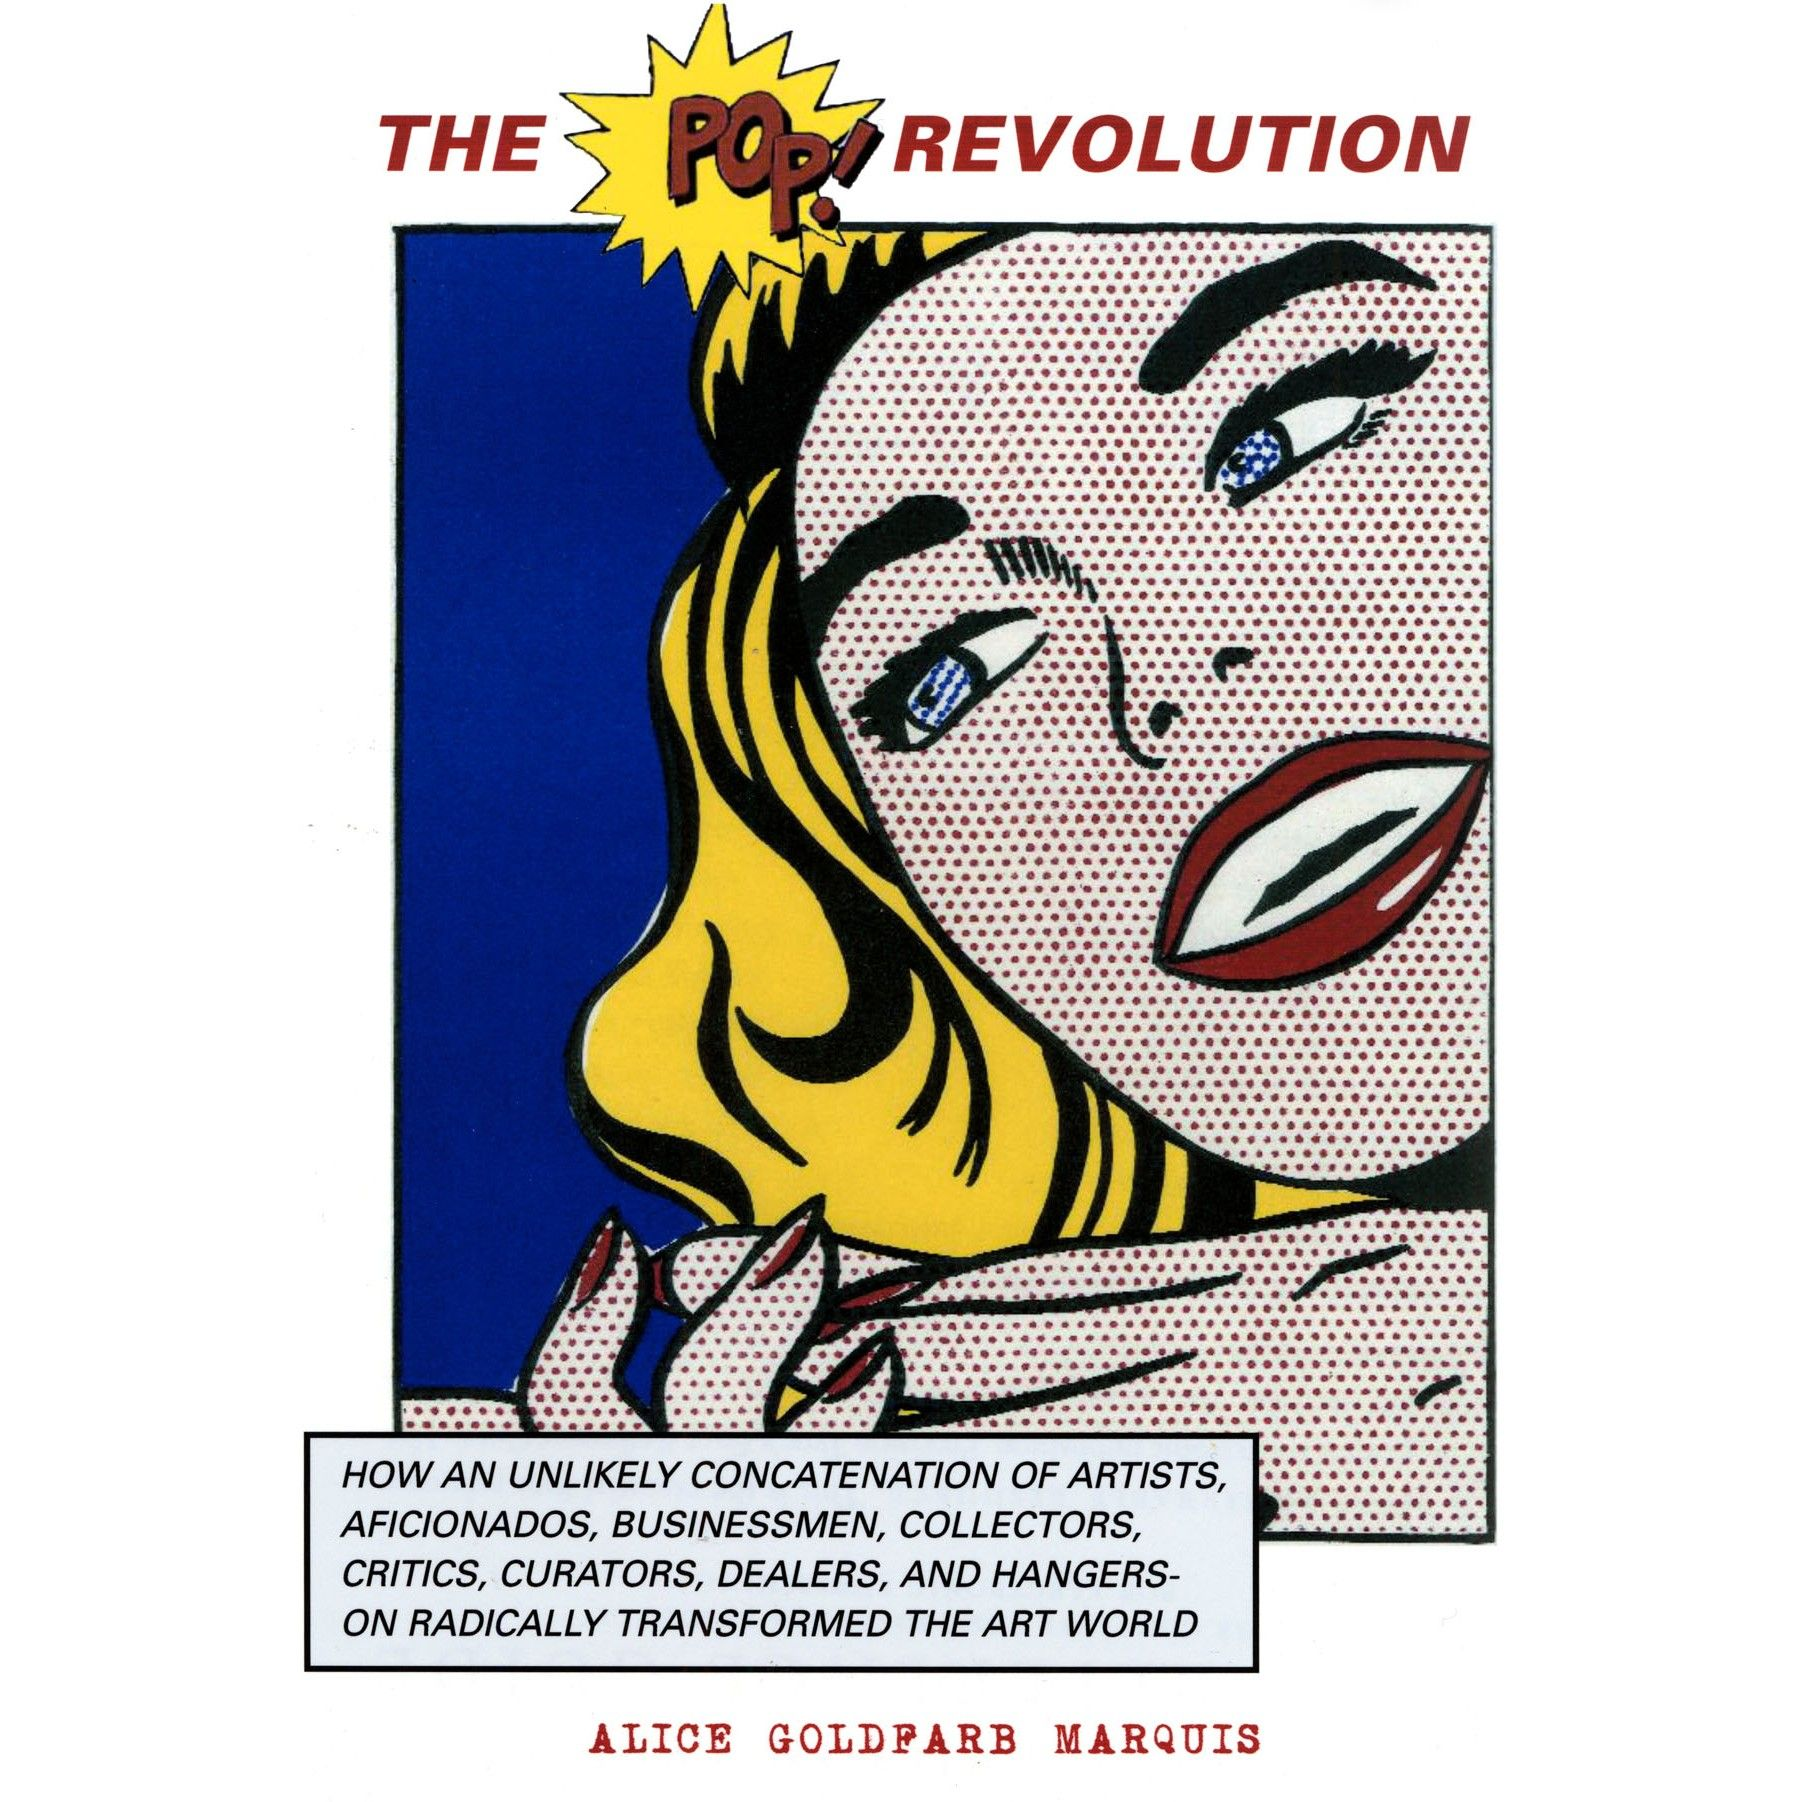 The Pop Revolution: The People Who Radically Transformed the Art World, Buy Unique Gifts From CultureLabel.com